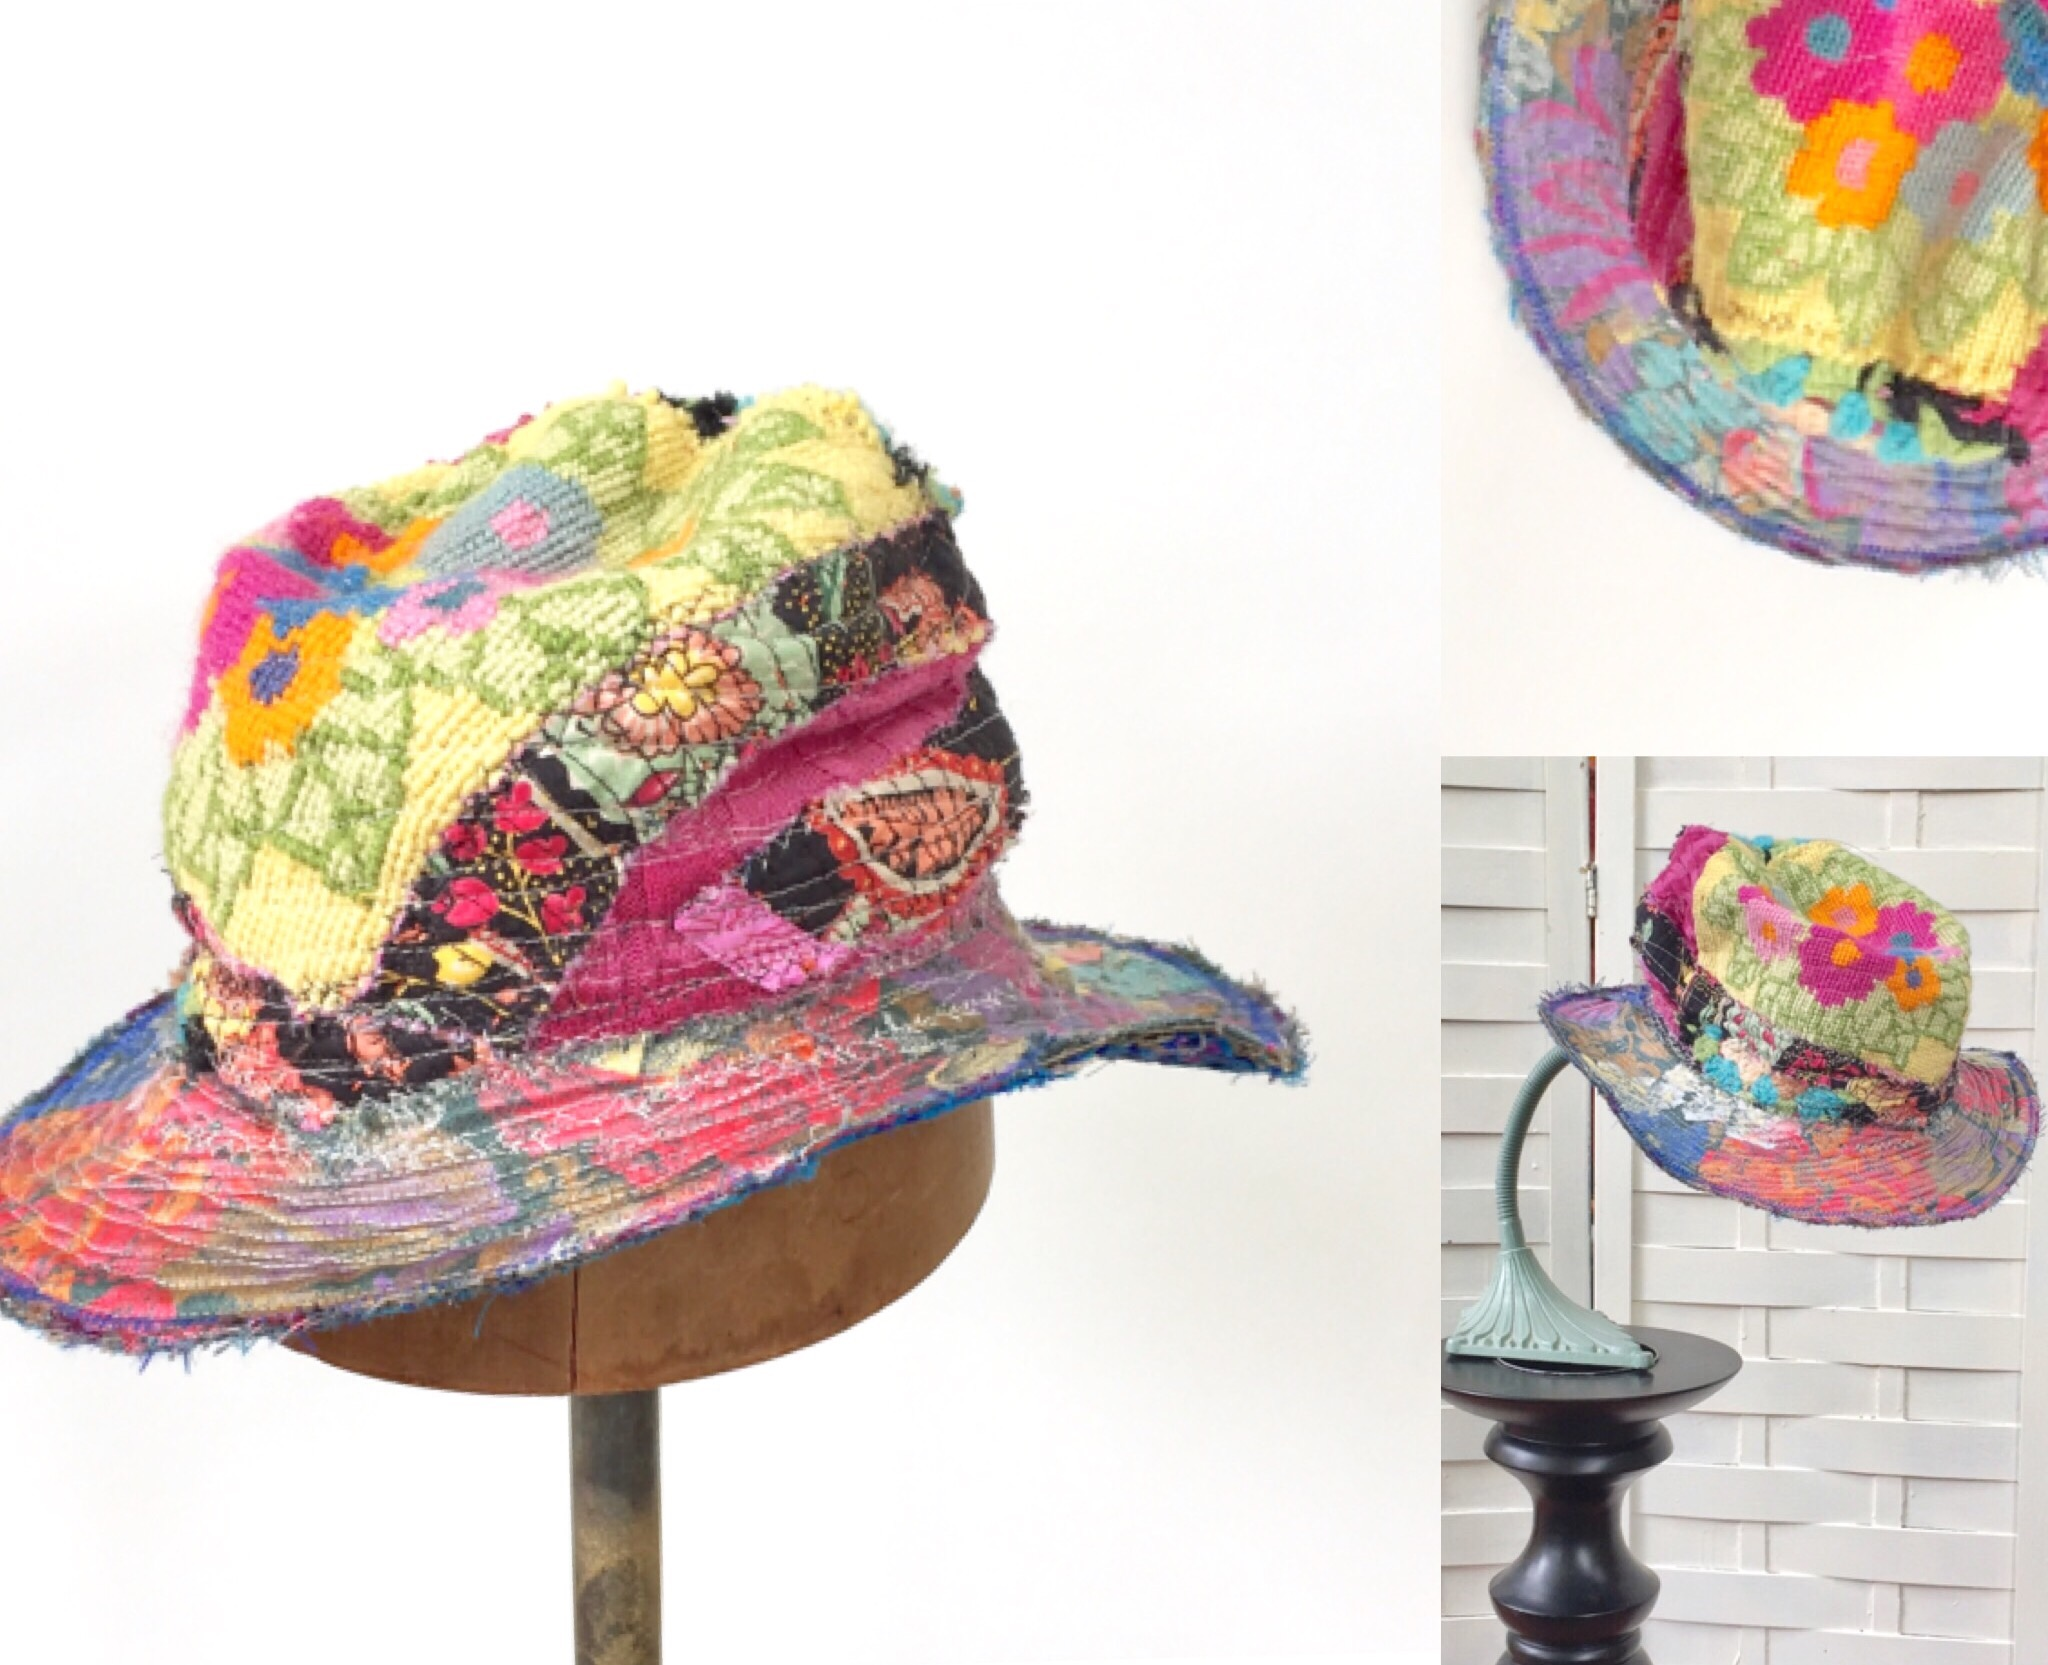 Upcycled Bowlskets • Recycled Ideas | Beautiful, Kittens ...  |Upcycled Art